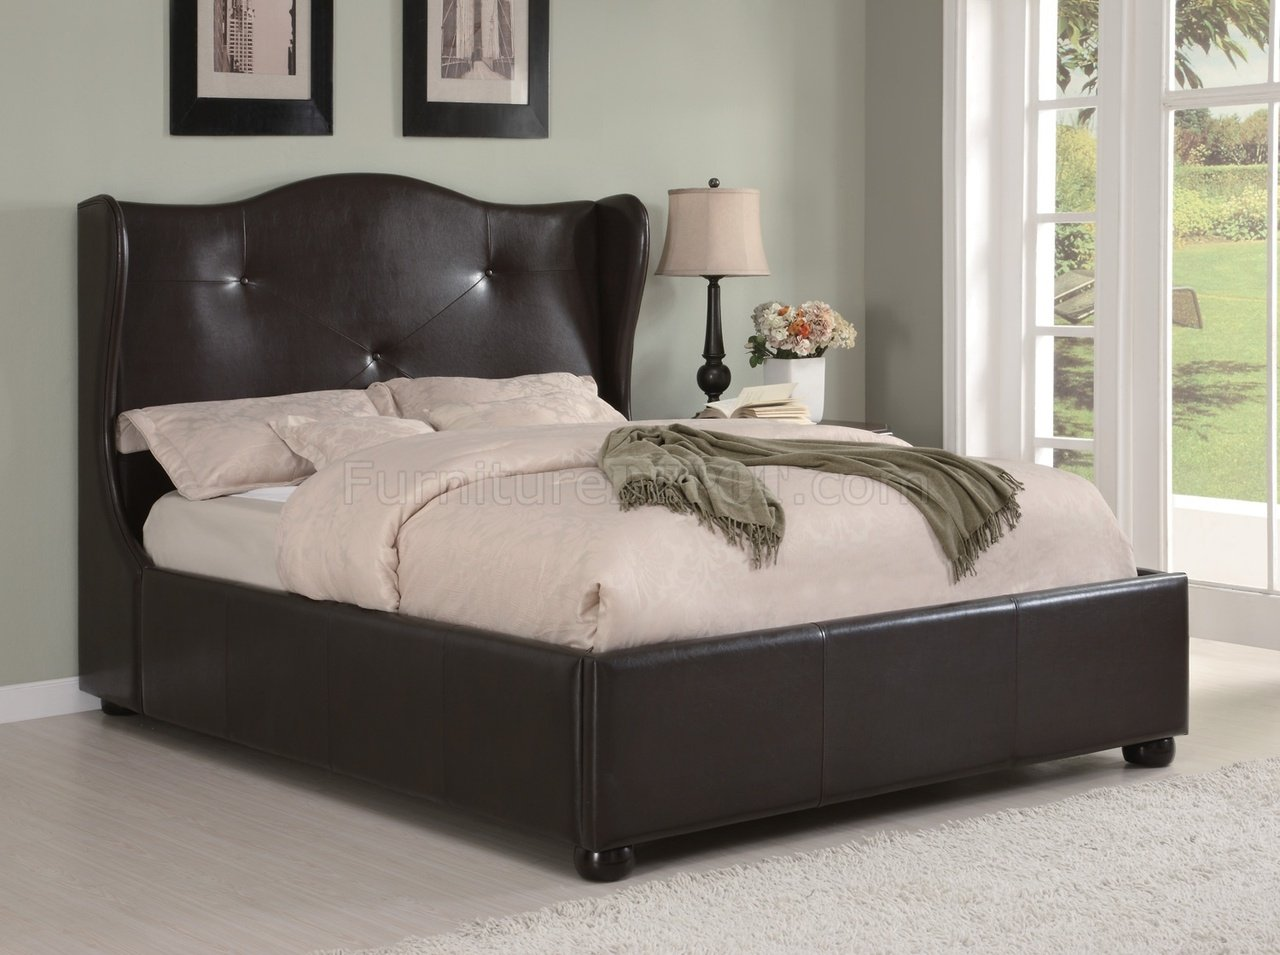 300192 Upholstered Bed By Coaster In Dark Brown Faux Leather